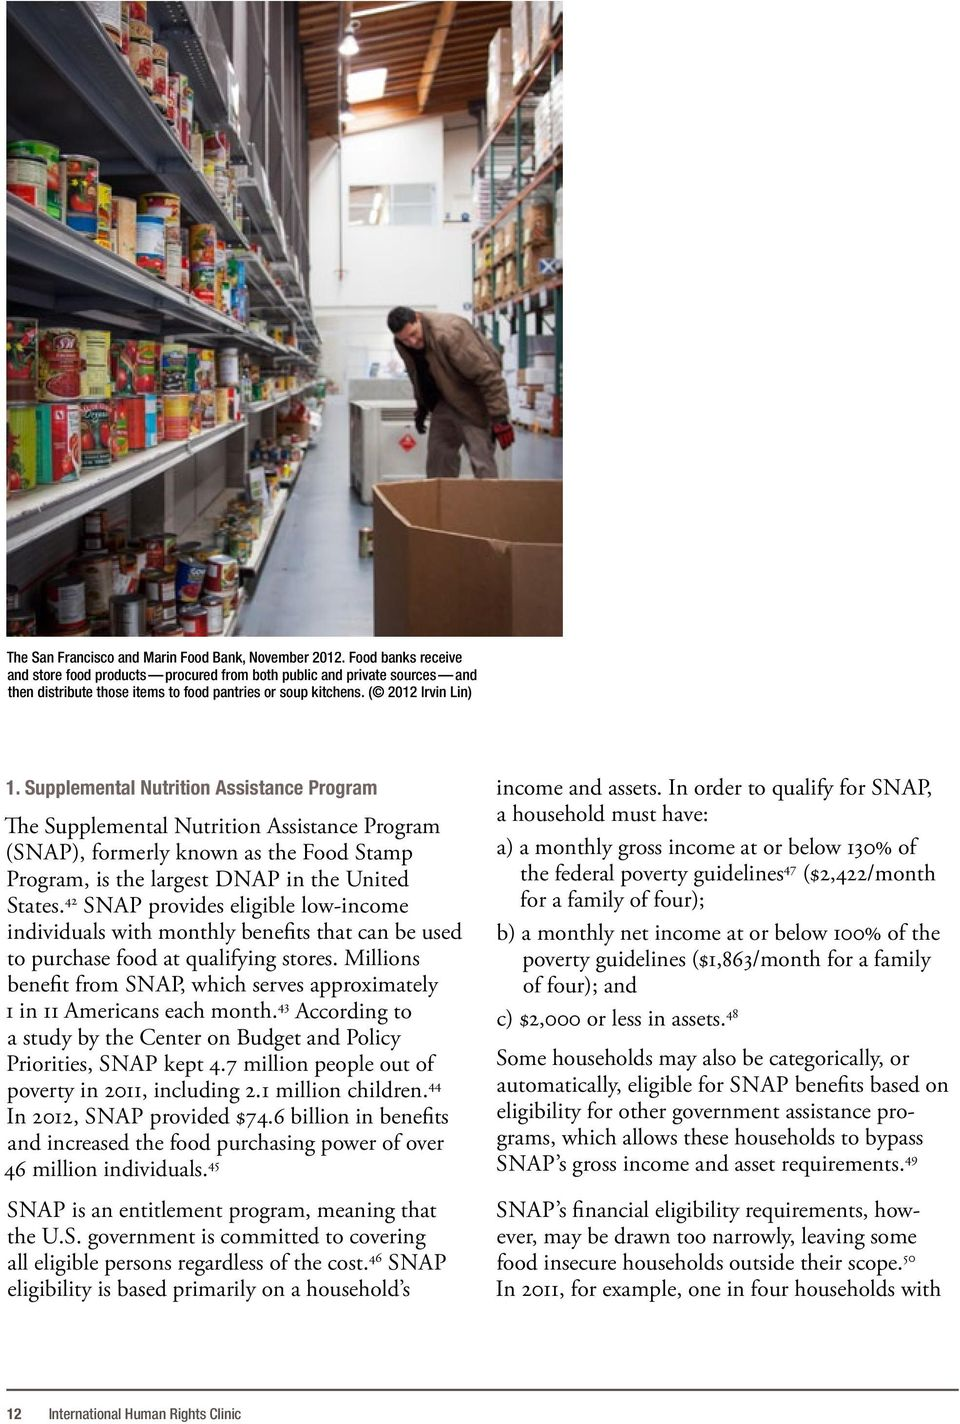 Supplemental Nutrition Assistance Program The Supplemental Nutrition Assistance Program (SNAP), formerly known as the Food Stamp Program, is the largest DNAP in the United States.